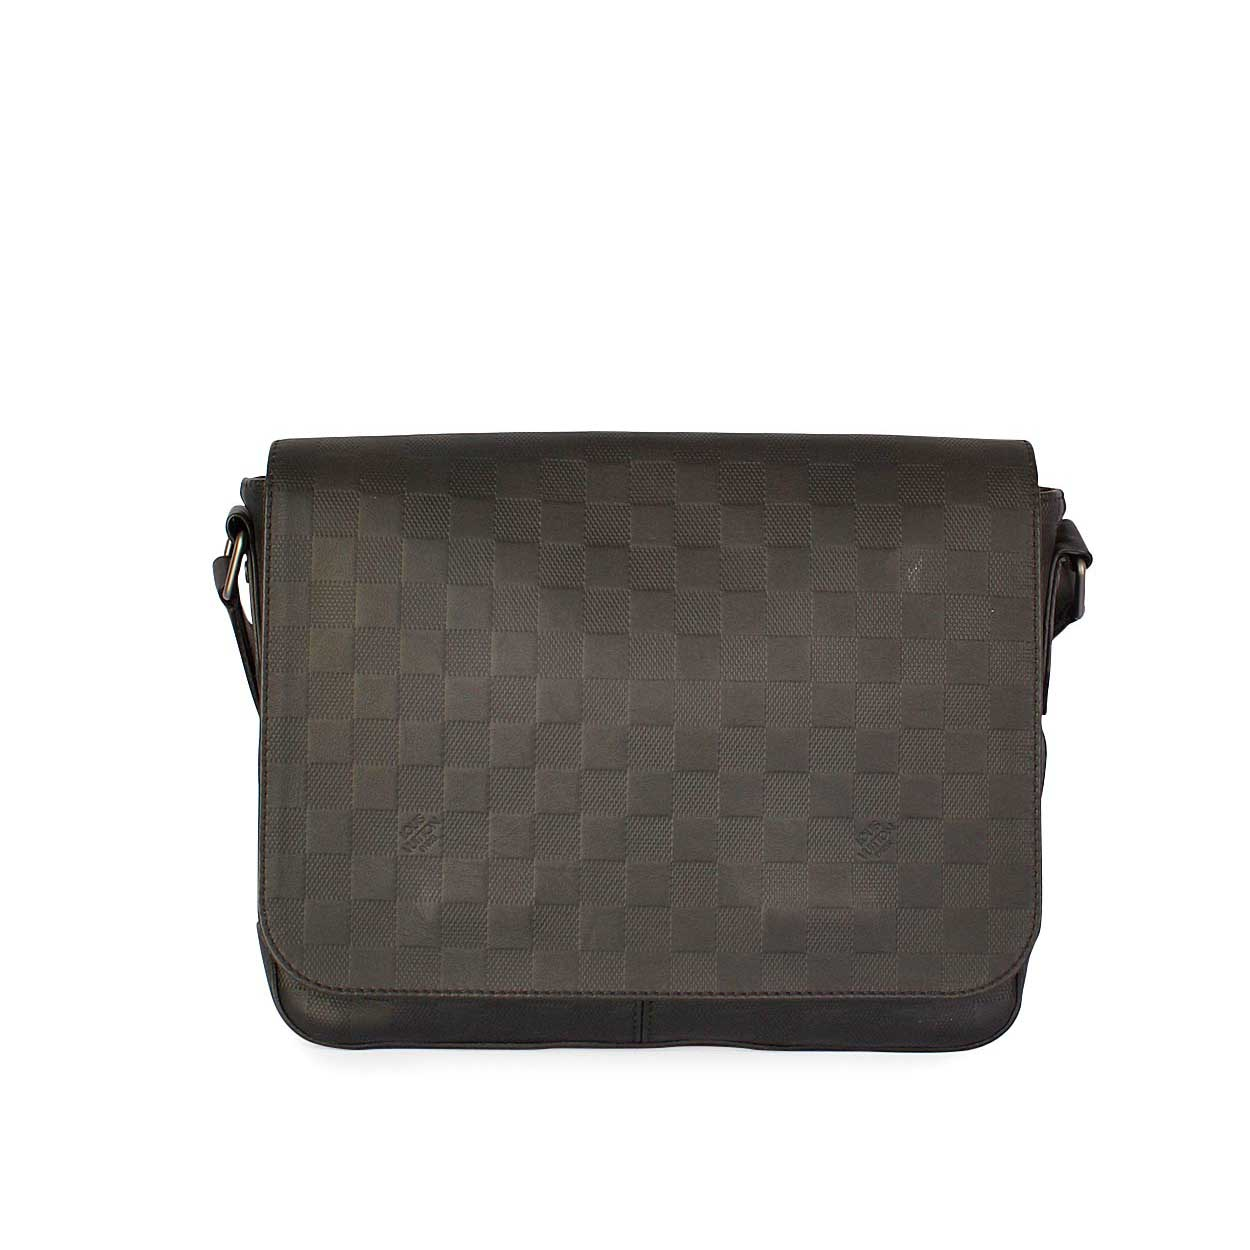 46326d393b9e3 LOUIS VUITTON Damier Infini District MM Messenger Bag